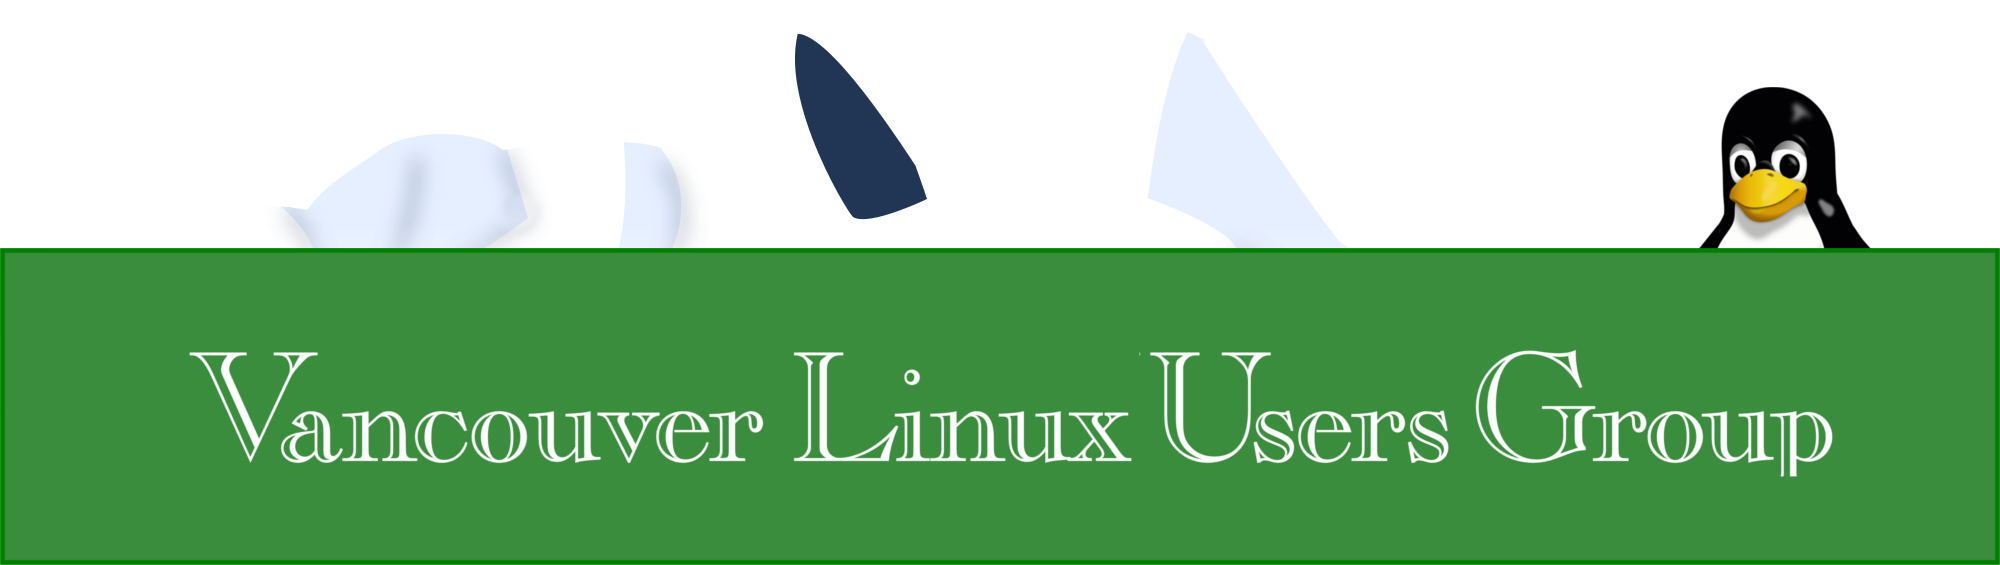 Vancouver Linux Users Group